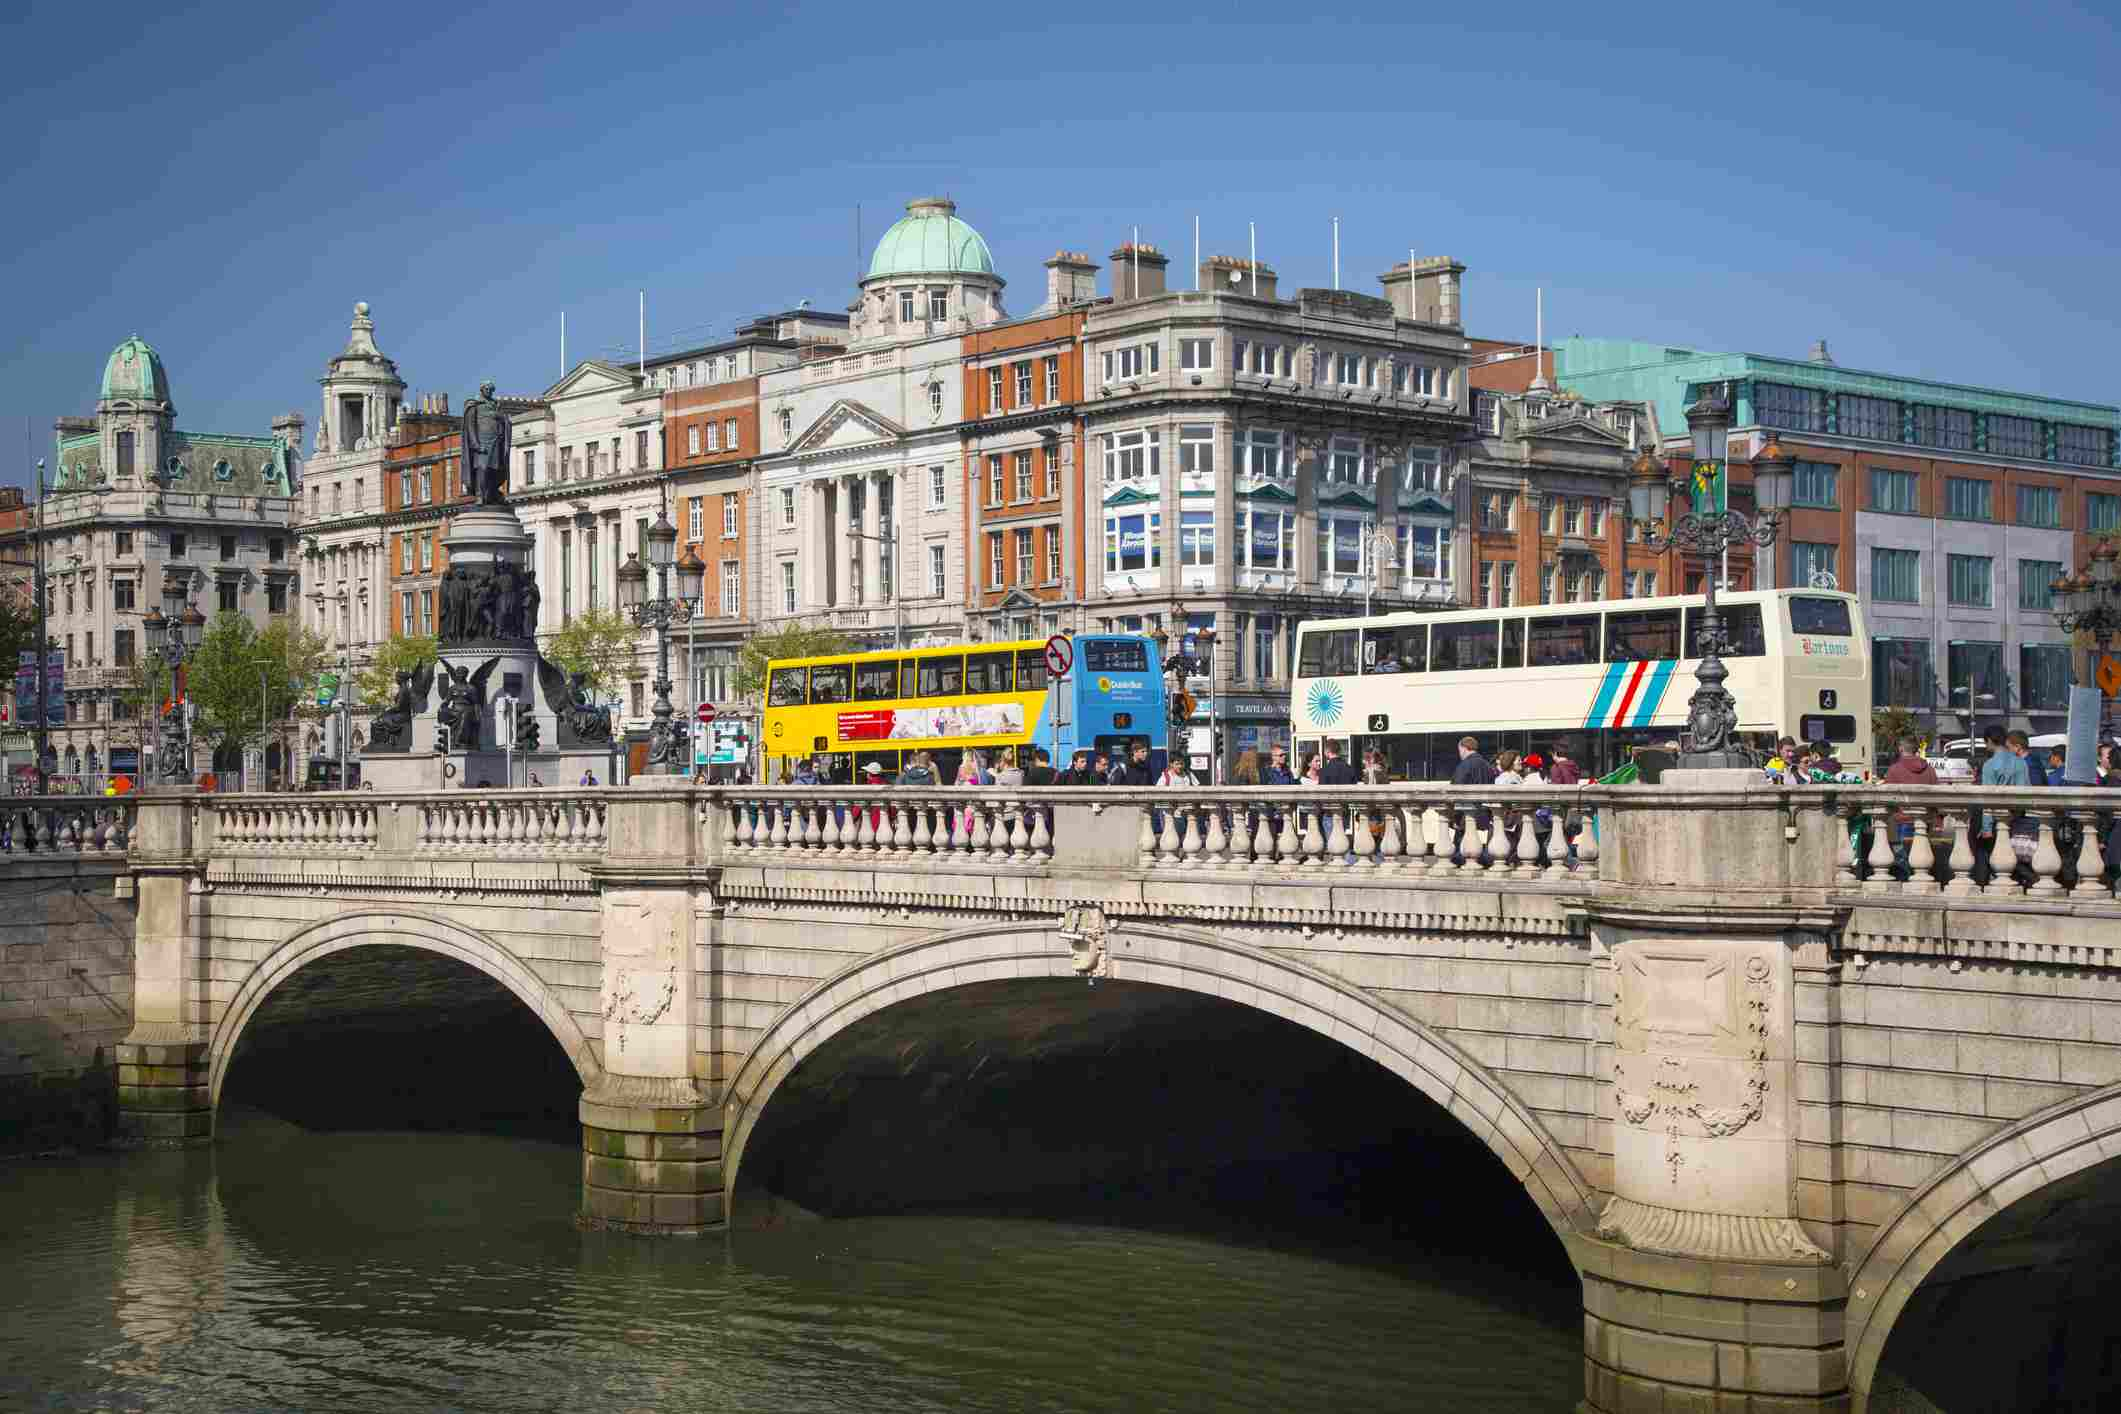 OConnell Bridge is a road bridge spanning the River Liffey in Dublin, and joining OConnell Street to DOlier Street, Westmoreland Street and the south quays. The original bridge was designed by James Gandon, and built between 1791 and 1794. OConnell Bridge is said to be unique in Europe as the only traffic bridge wider than it is long. When the bridge was reopened c.1882 it was renamed for Daniel OConnell when the statue in his honor was unveiled.